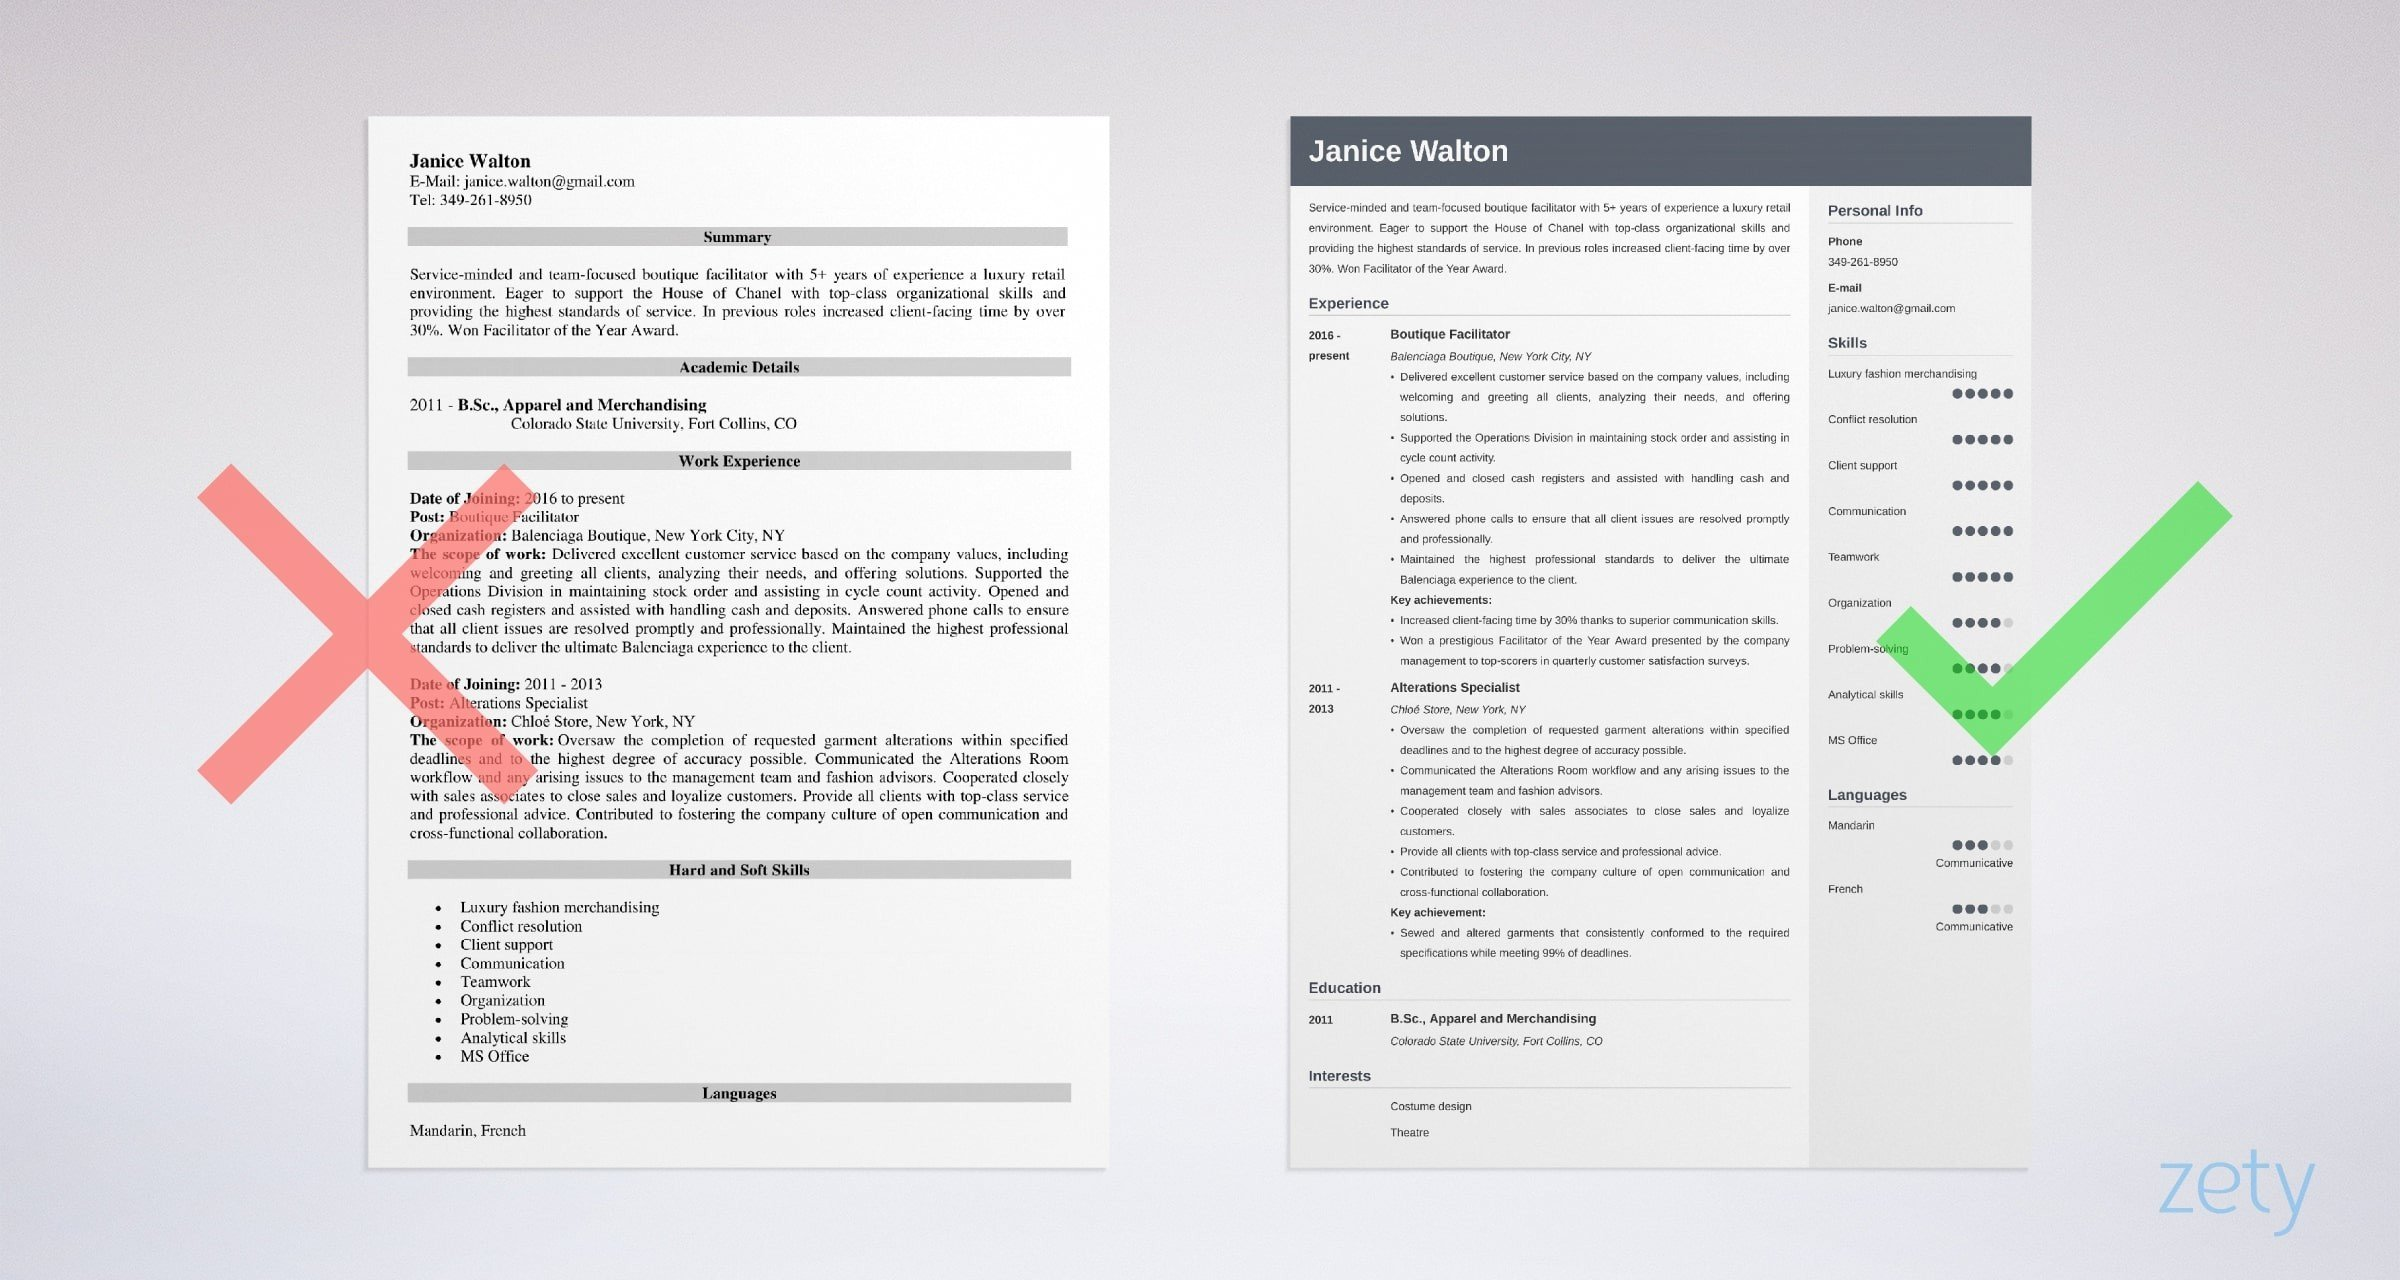 fashion resume examples templates guide with tips example permanent resident courses for Resume Fashion Resume Examples